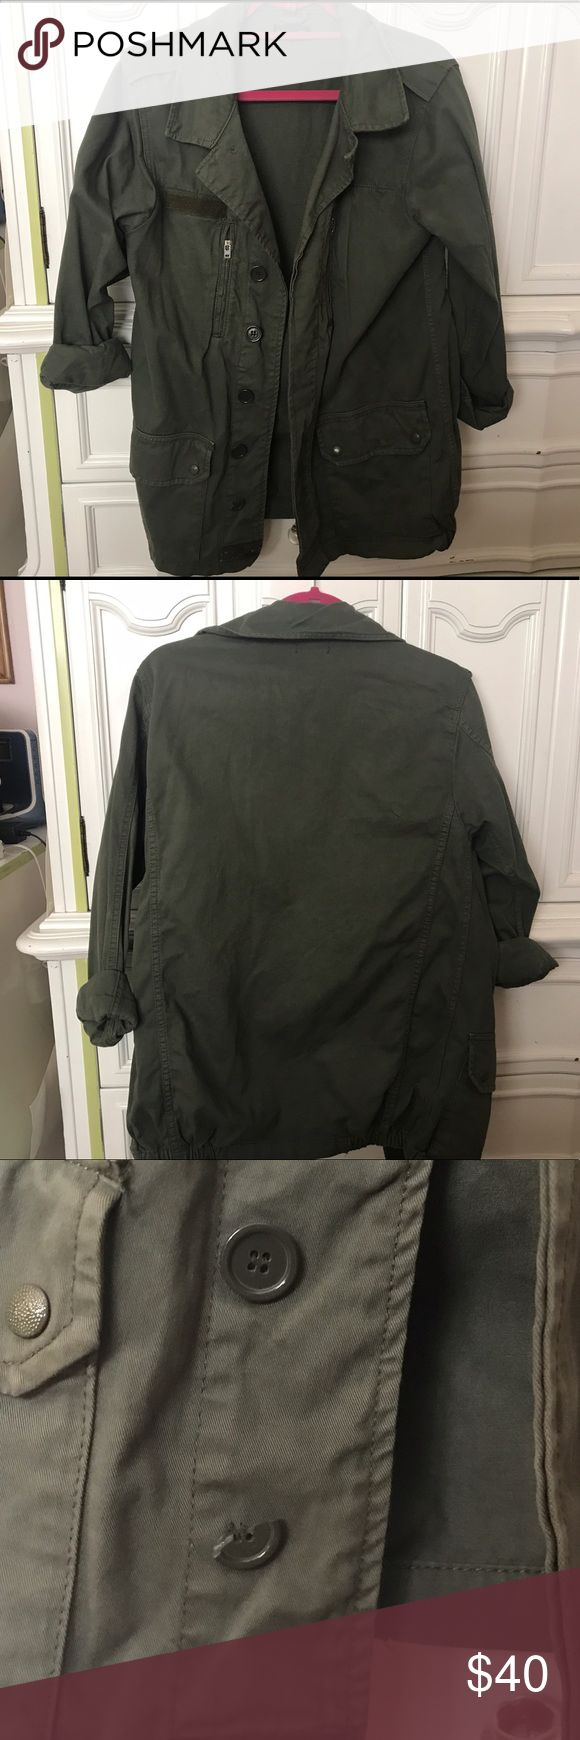 Topshop jacket Good Condition. Bottom button is chipped, but not very noticeable. Easily can replace. Topshop Jackets & Coats